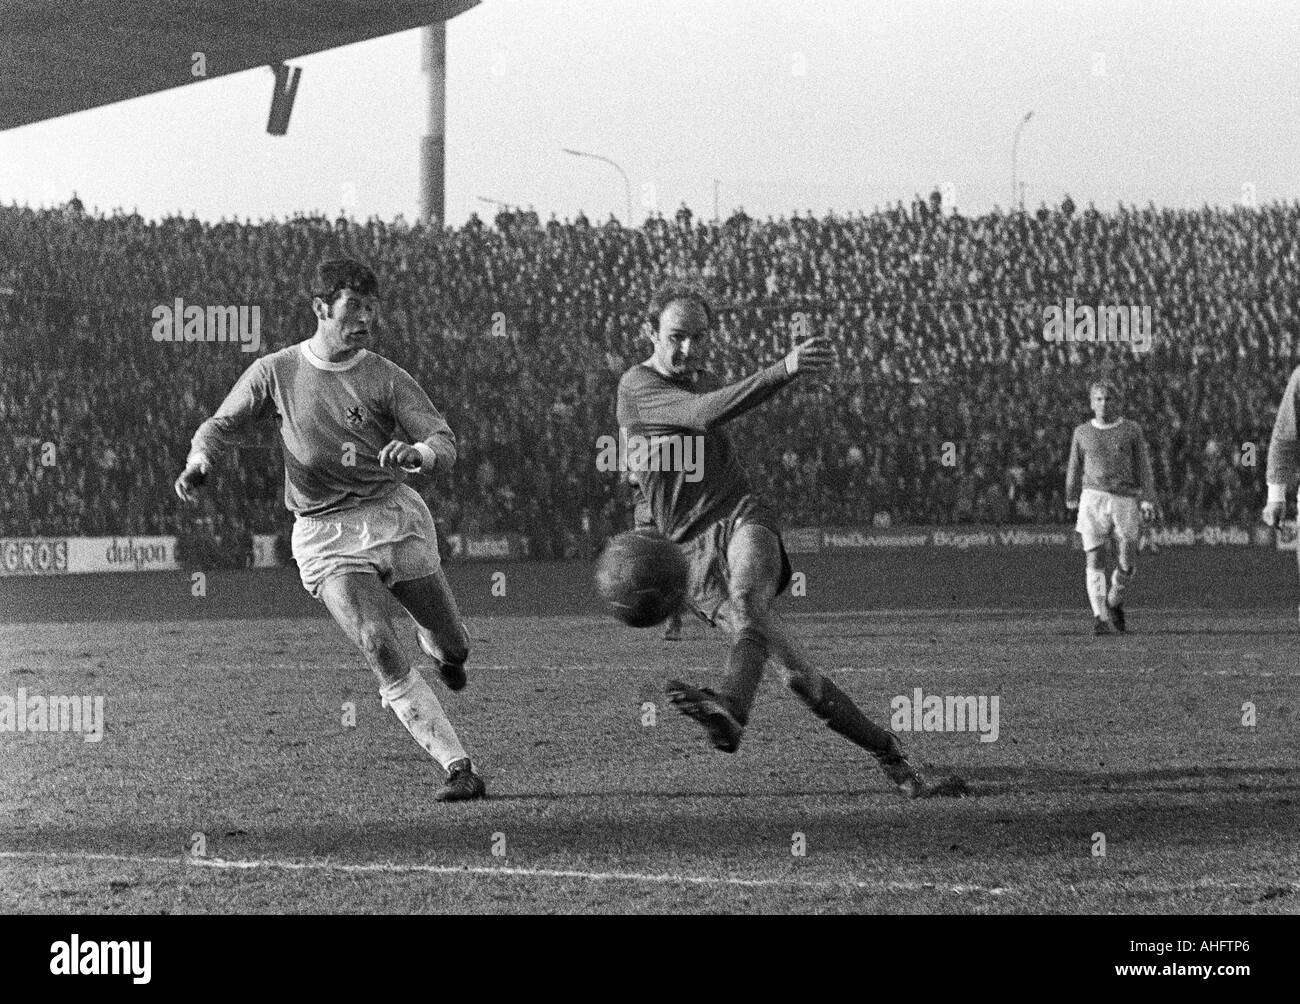 football, Bundesliga, 1968/1969, Borussia Moenchengladbach versus 1860 Munich 3:0, Boekelberg Stadium, scene of the match, left Hans Reich (1860), right Horst Koeppel (MG) shots on goal - Stock Image